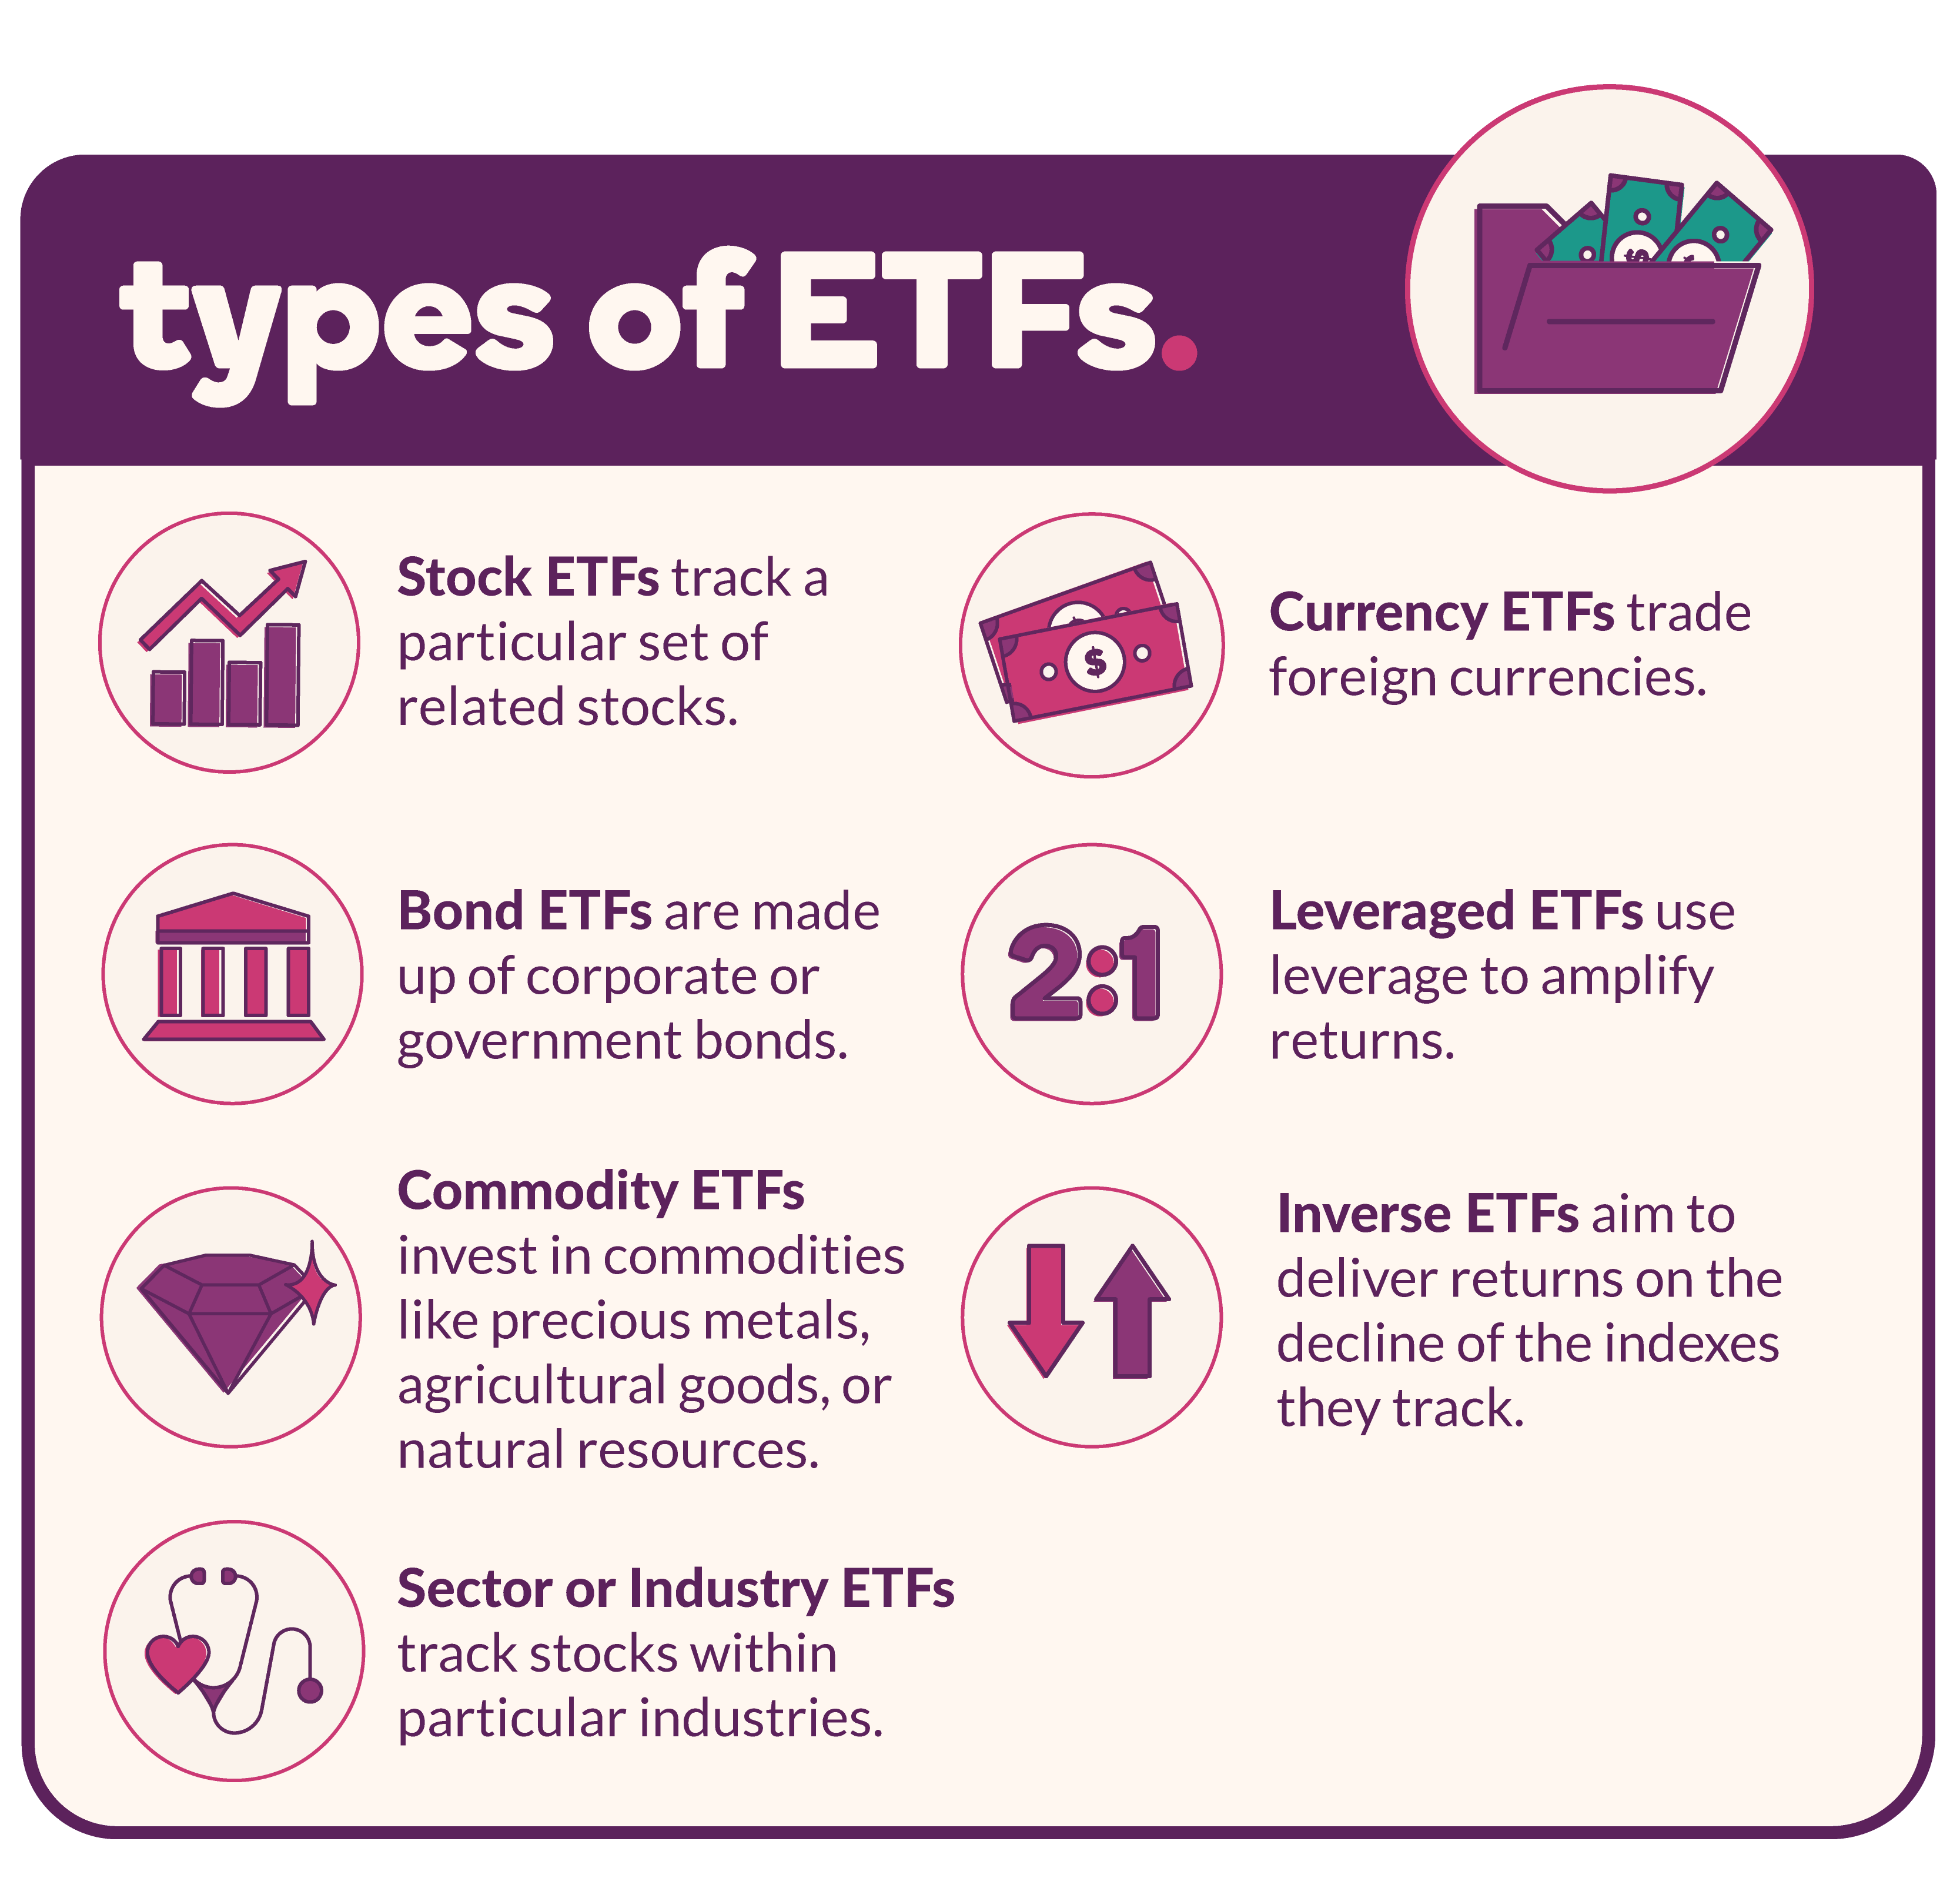 A visual representation of the types of ETFs listed below